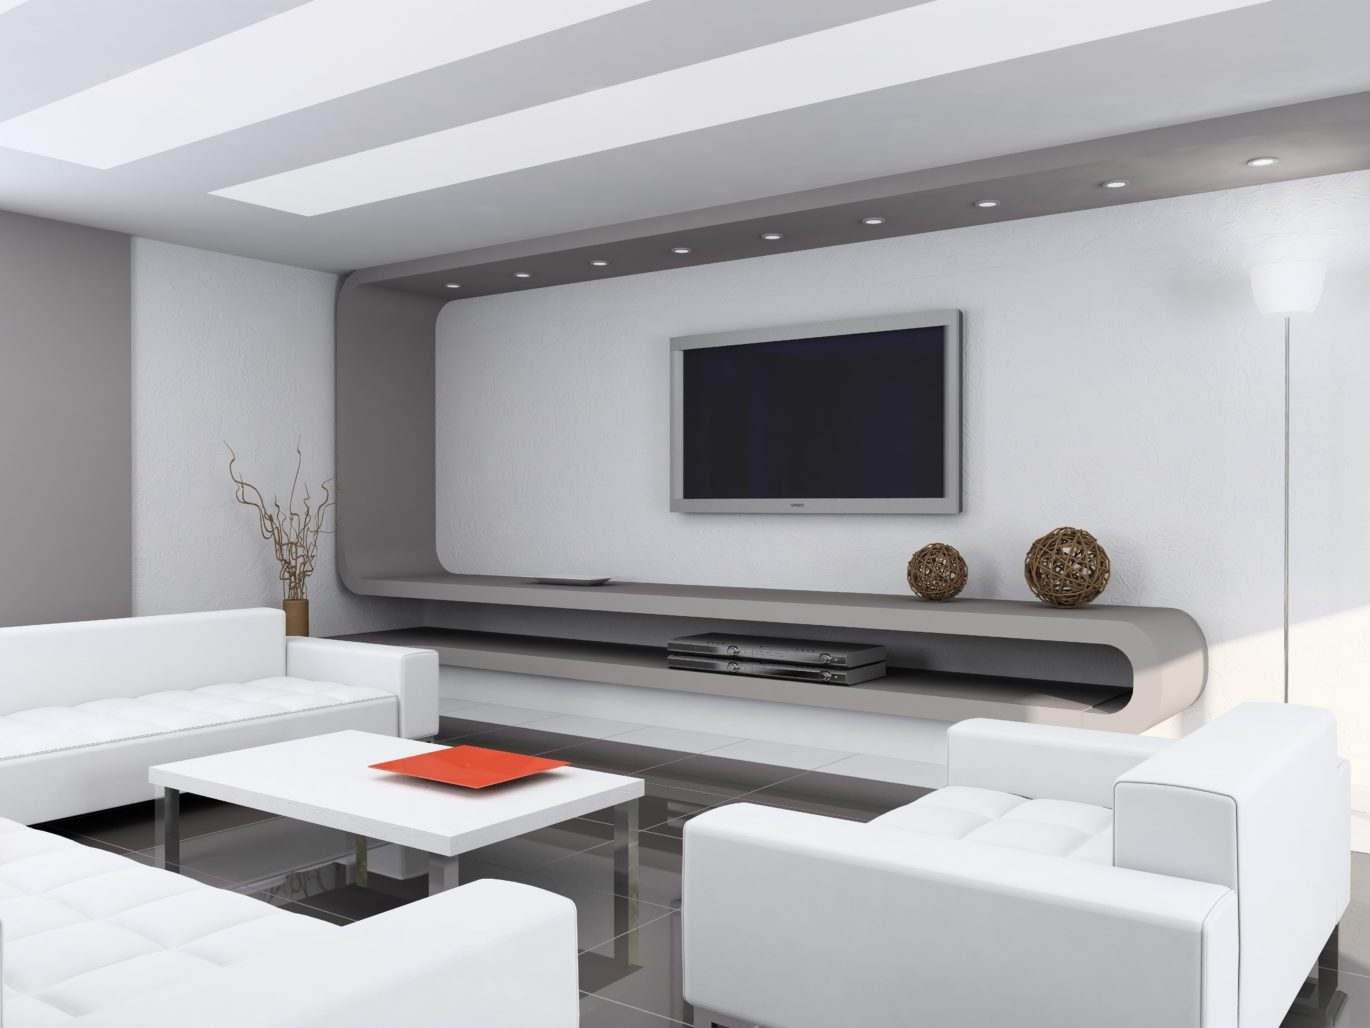 Basic Home Theater Furniture Such As Chairs And Television Cabinet May Be Good For Your Set Up Other That Will Enhance